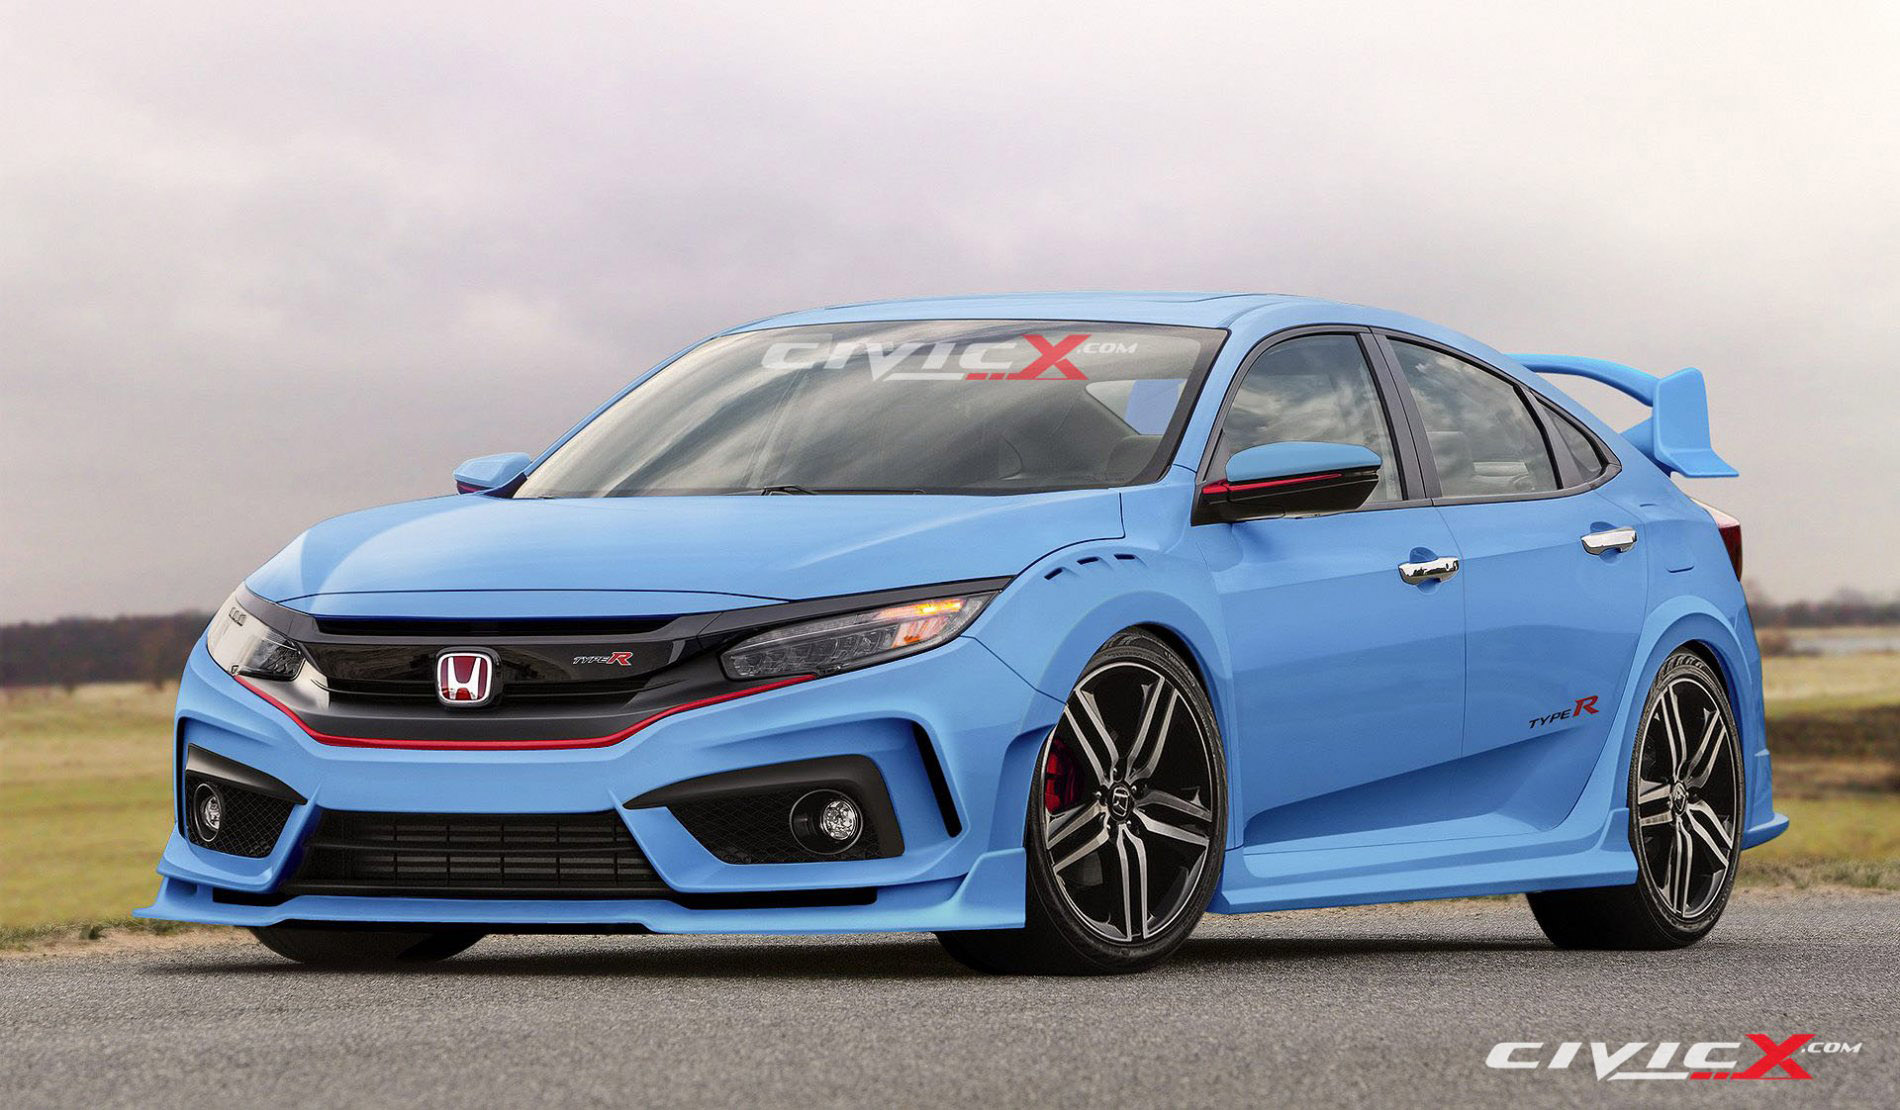 civicx imagines 2017 honda civic type r hatchback prototype. Black Bedroom Furniture Sets. Home Design Ideas